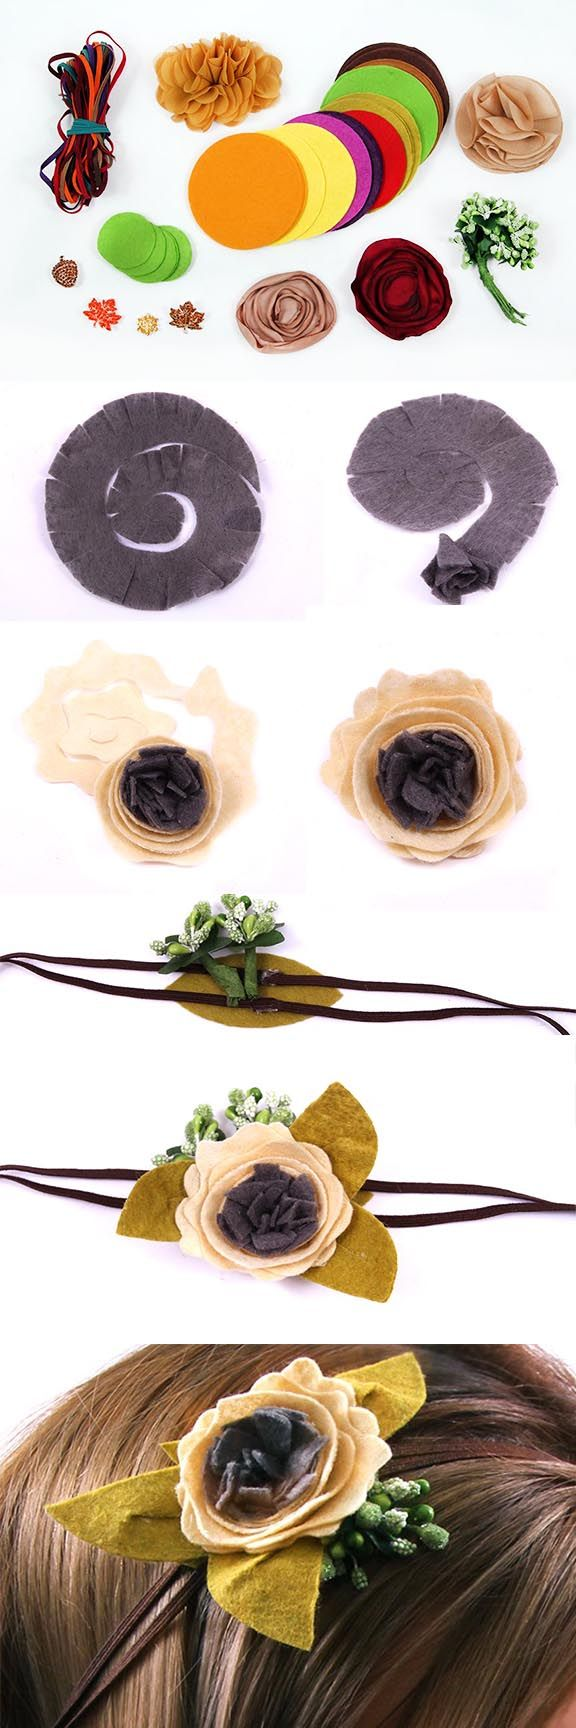 How to Make a Felt Flower Headband- add a new style of felt flower to your handmade headband repertoire!